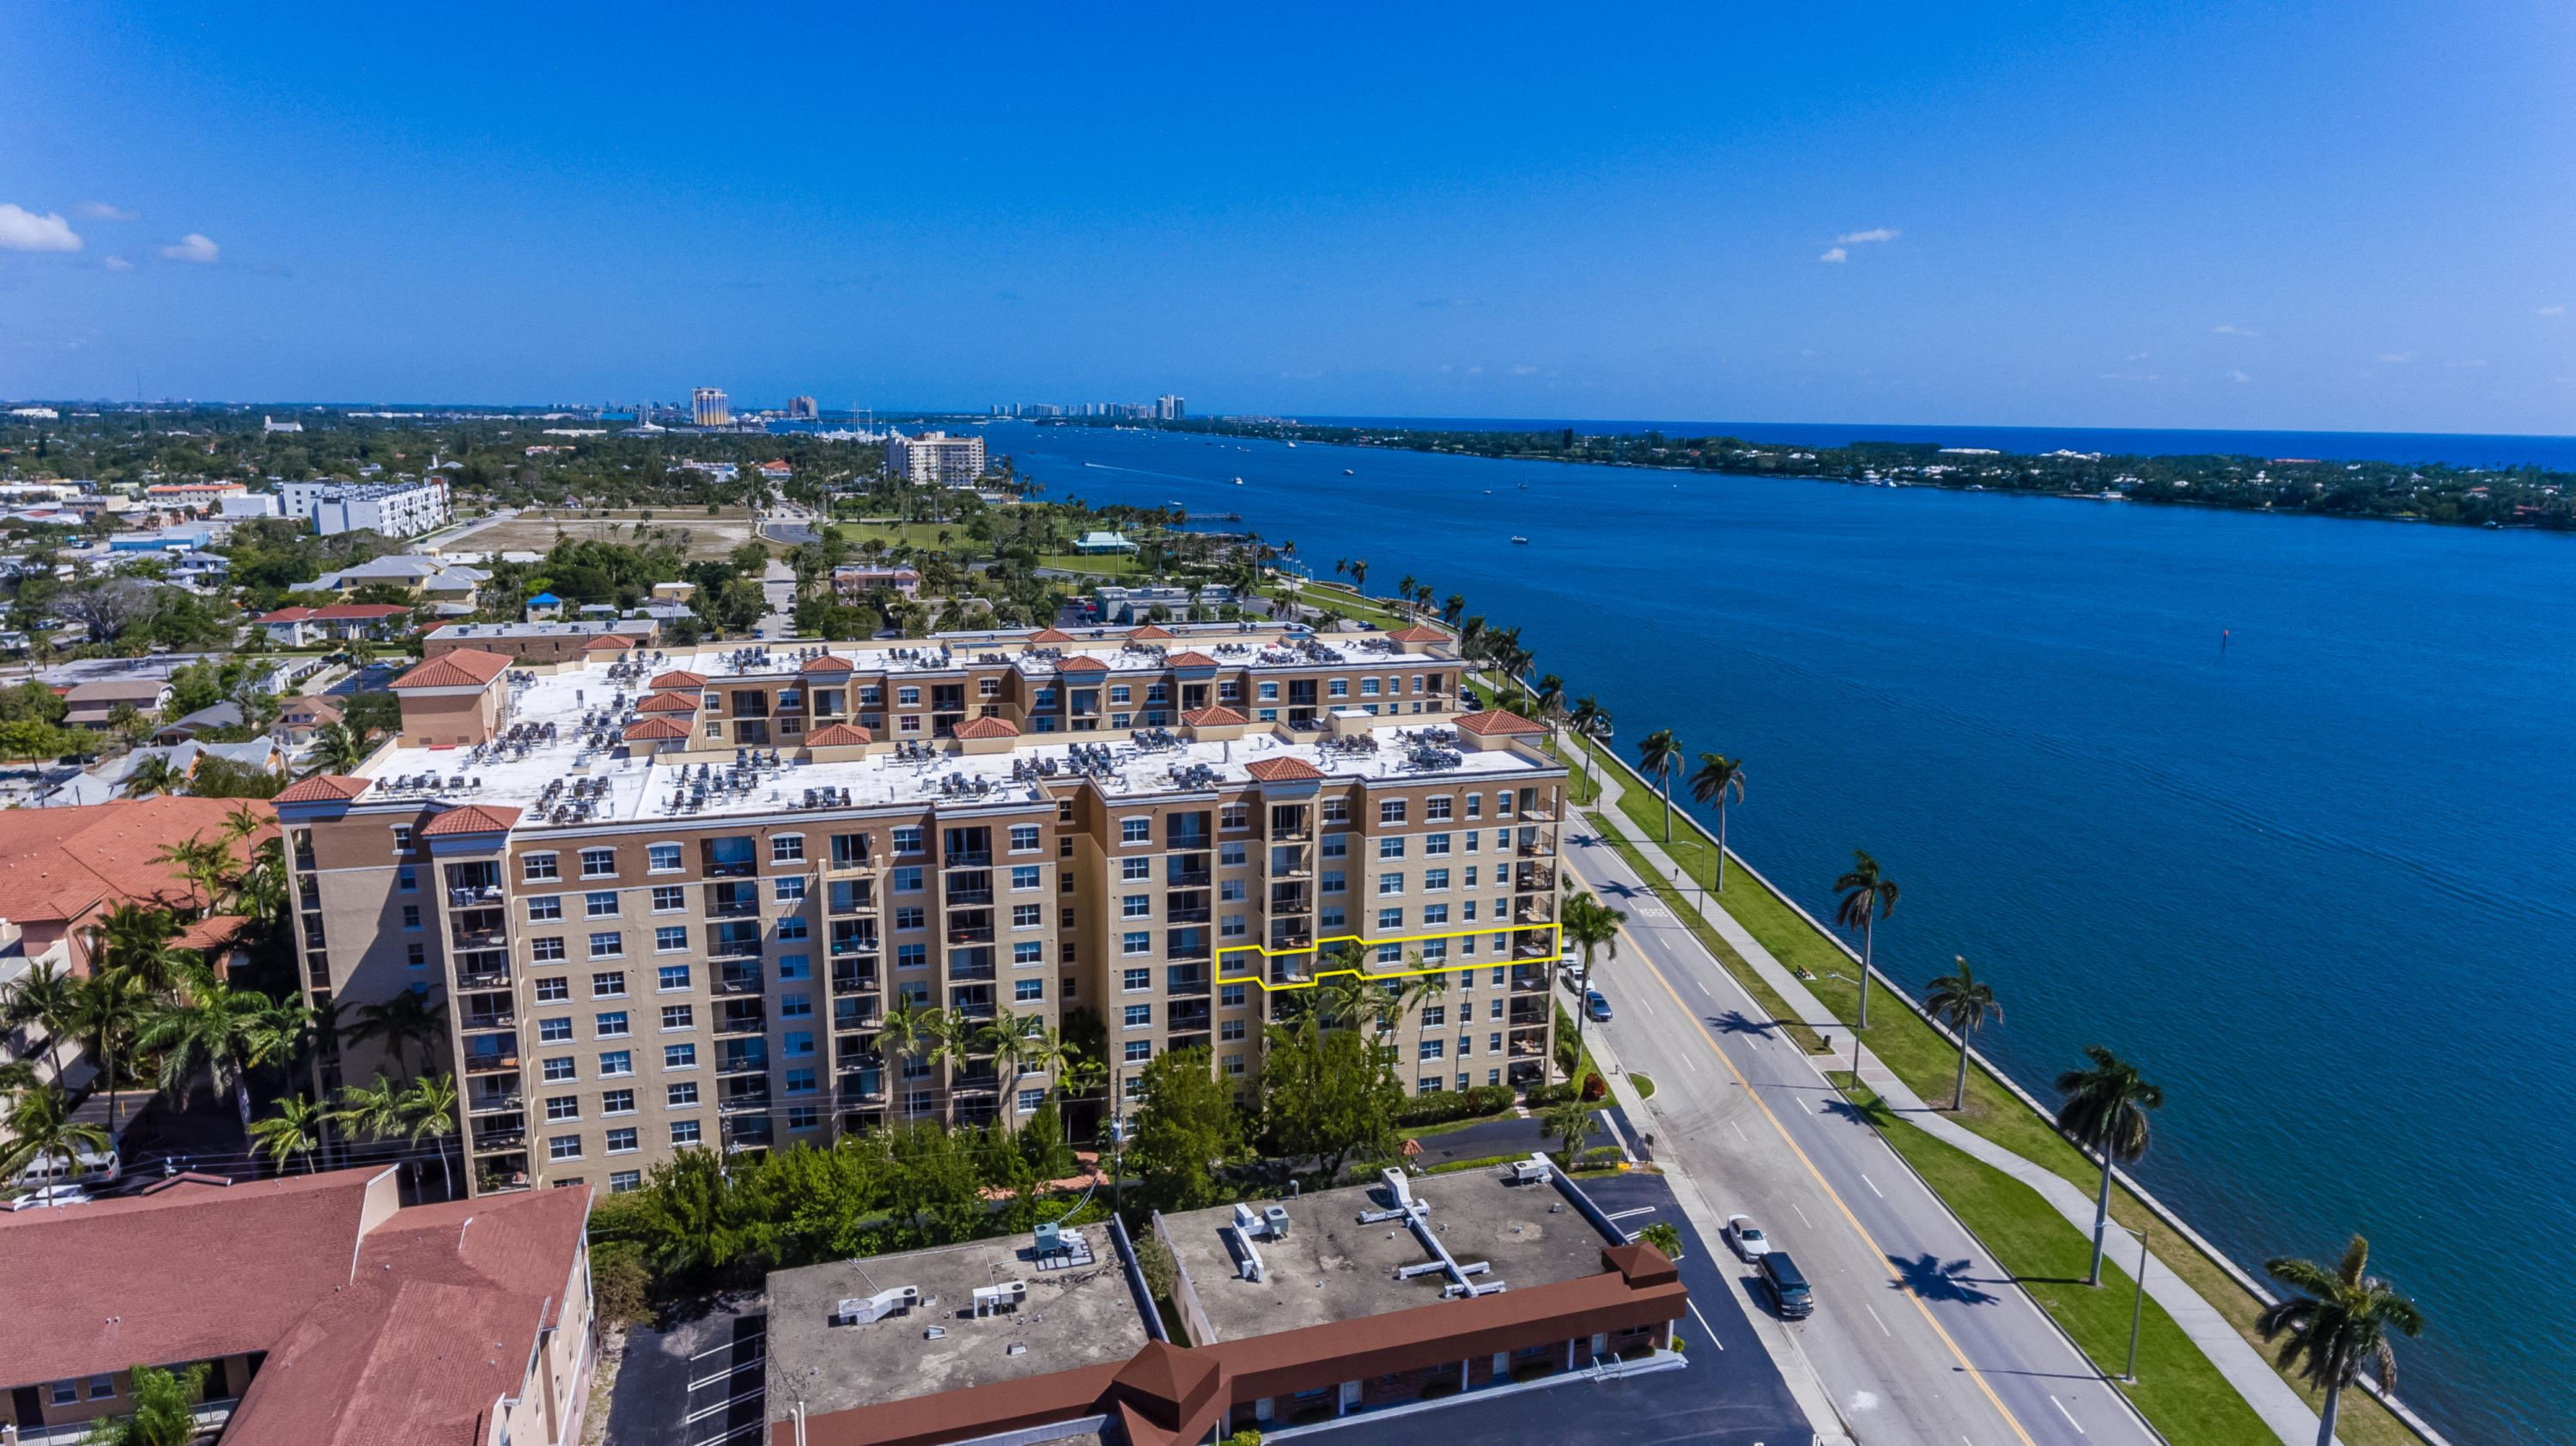 1801 N Flagler Drive Unit 502 & 504, one of homes for sale in West Palm Beach